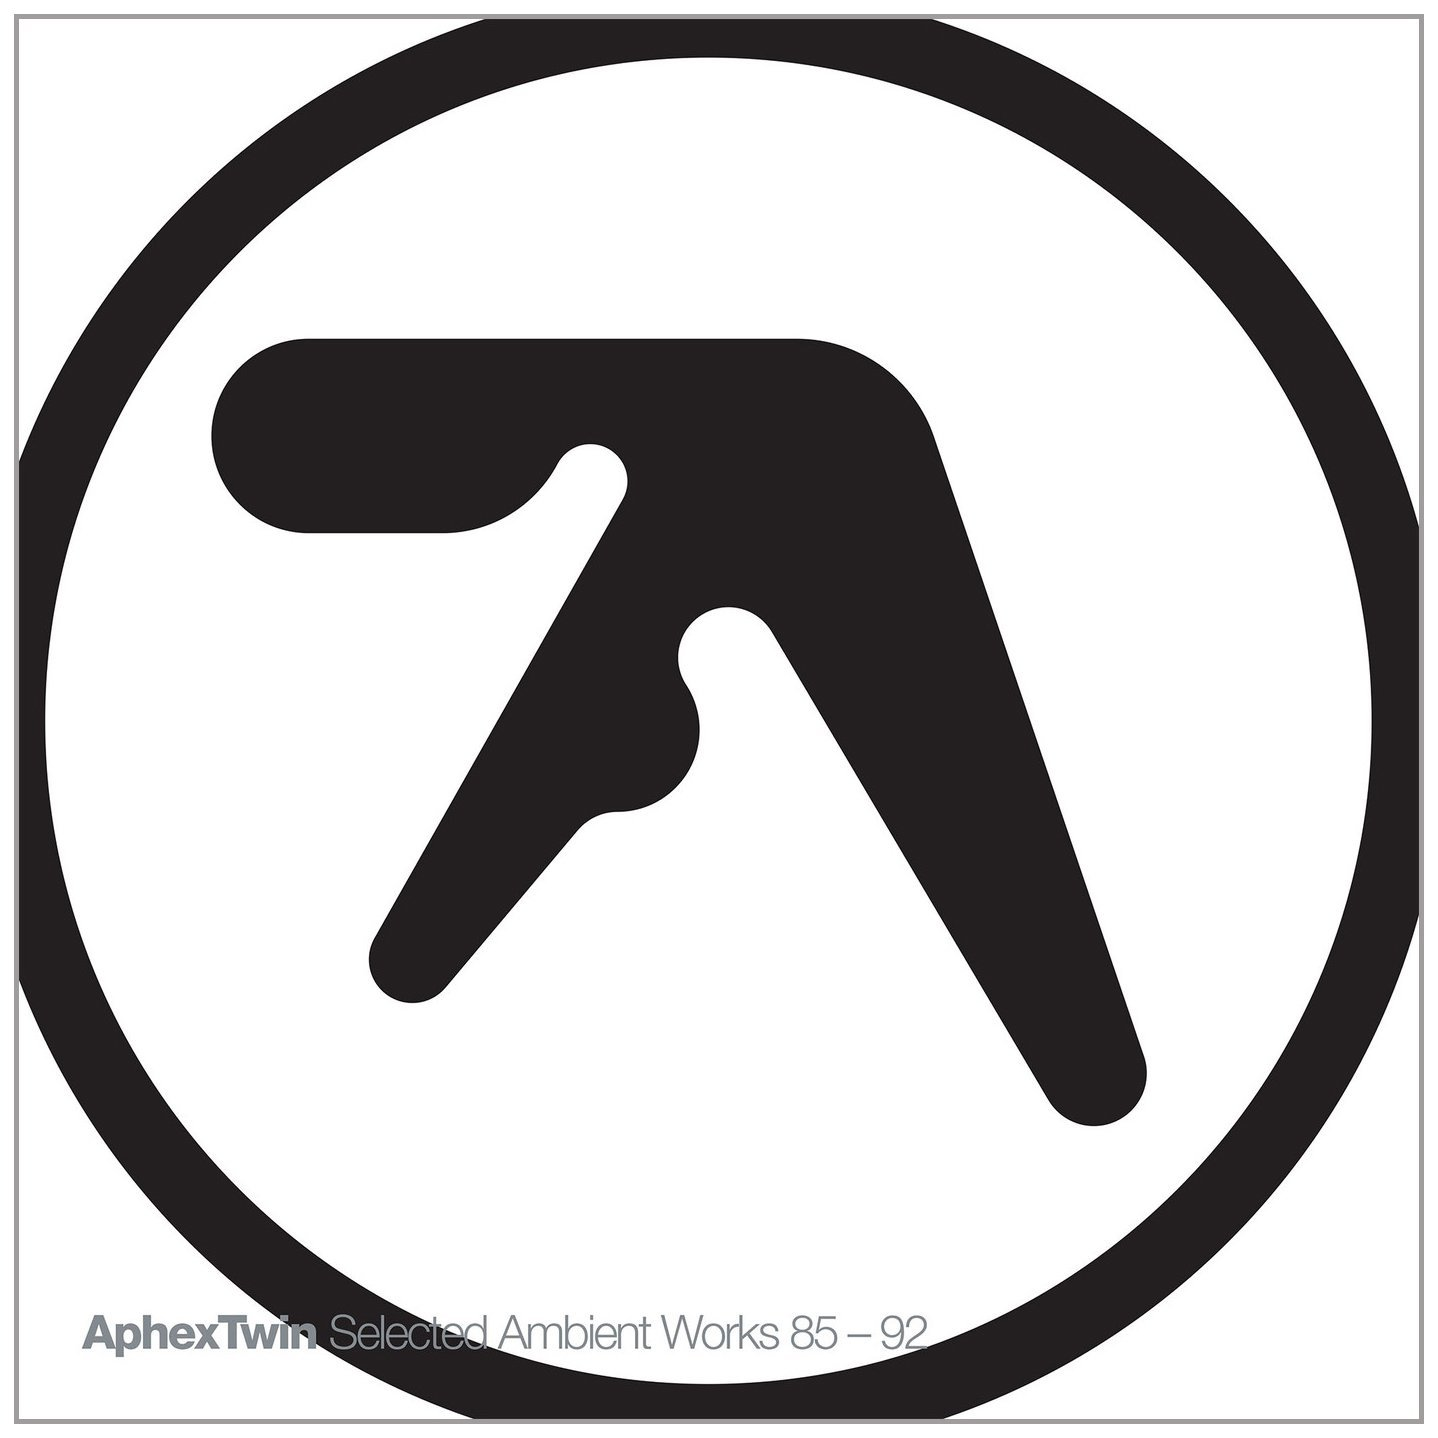 APHEX-TWIN-SELECTED-AMBIENT-WORKS-85-92-LP-Vinyl-Album-BRAND-NEW